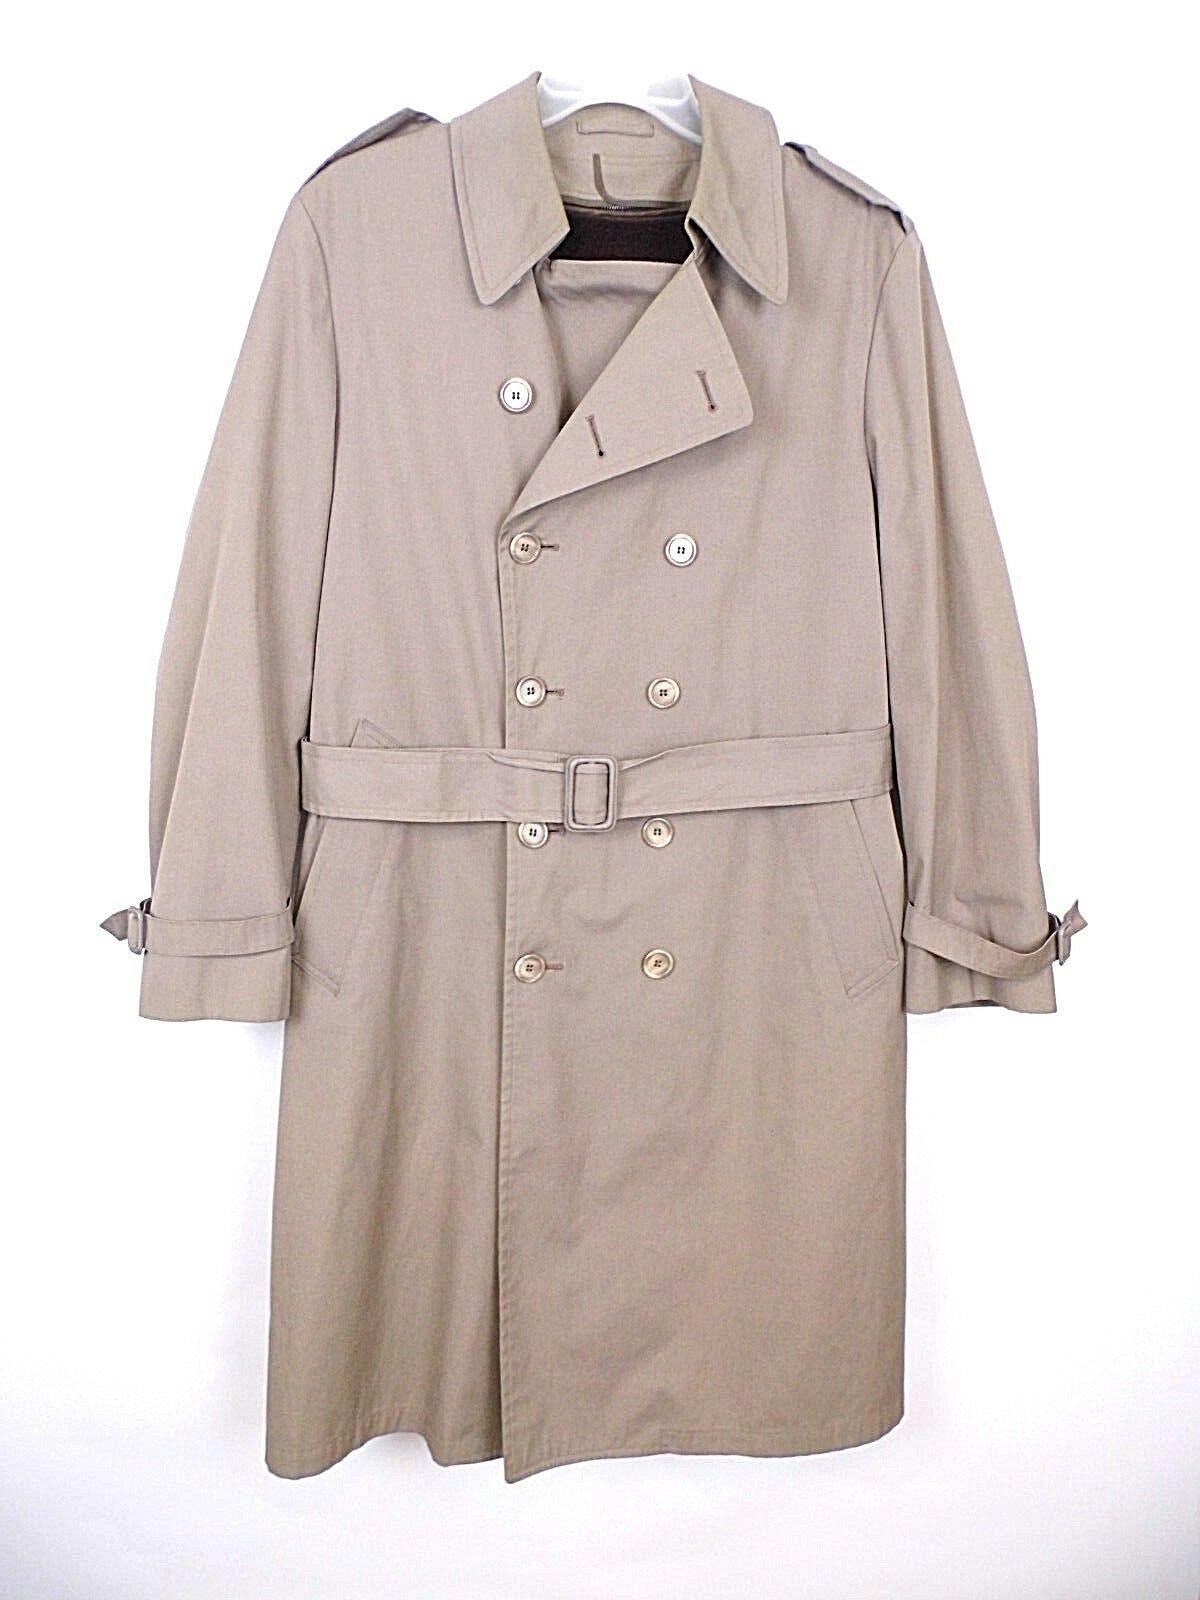 LONDON FOG  Herren 40 Reg Tan Trench Coat Double Breasted with Belt and Liner GUC